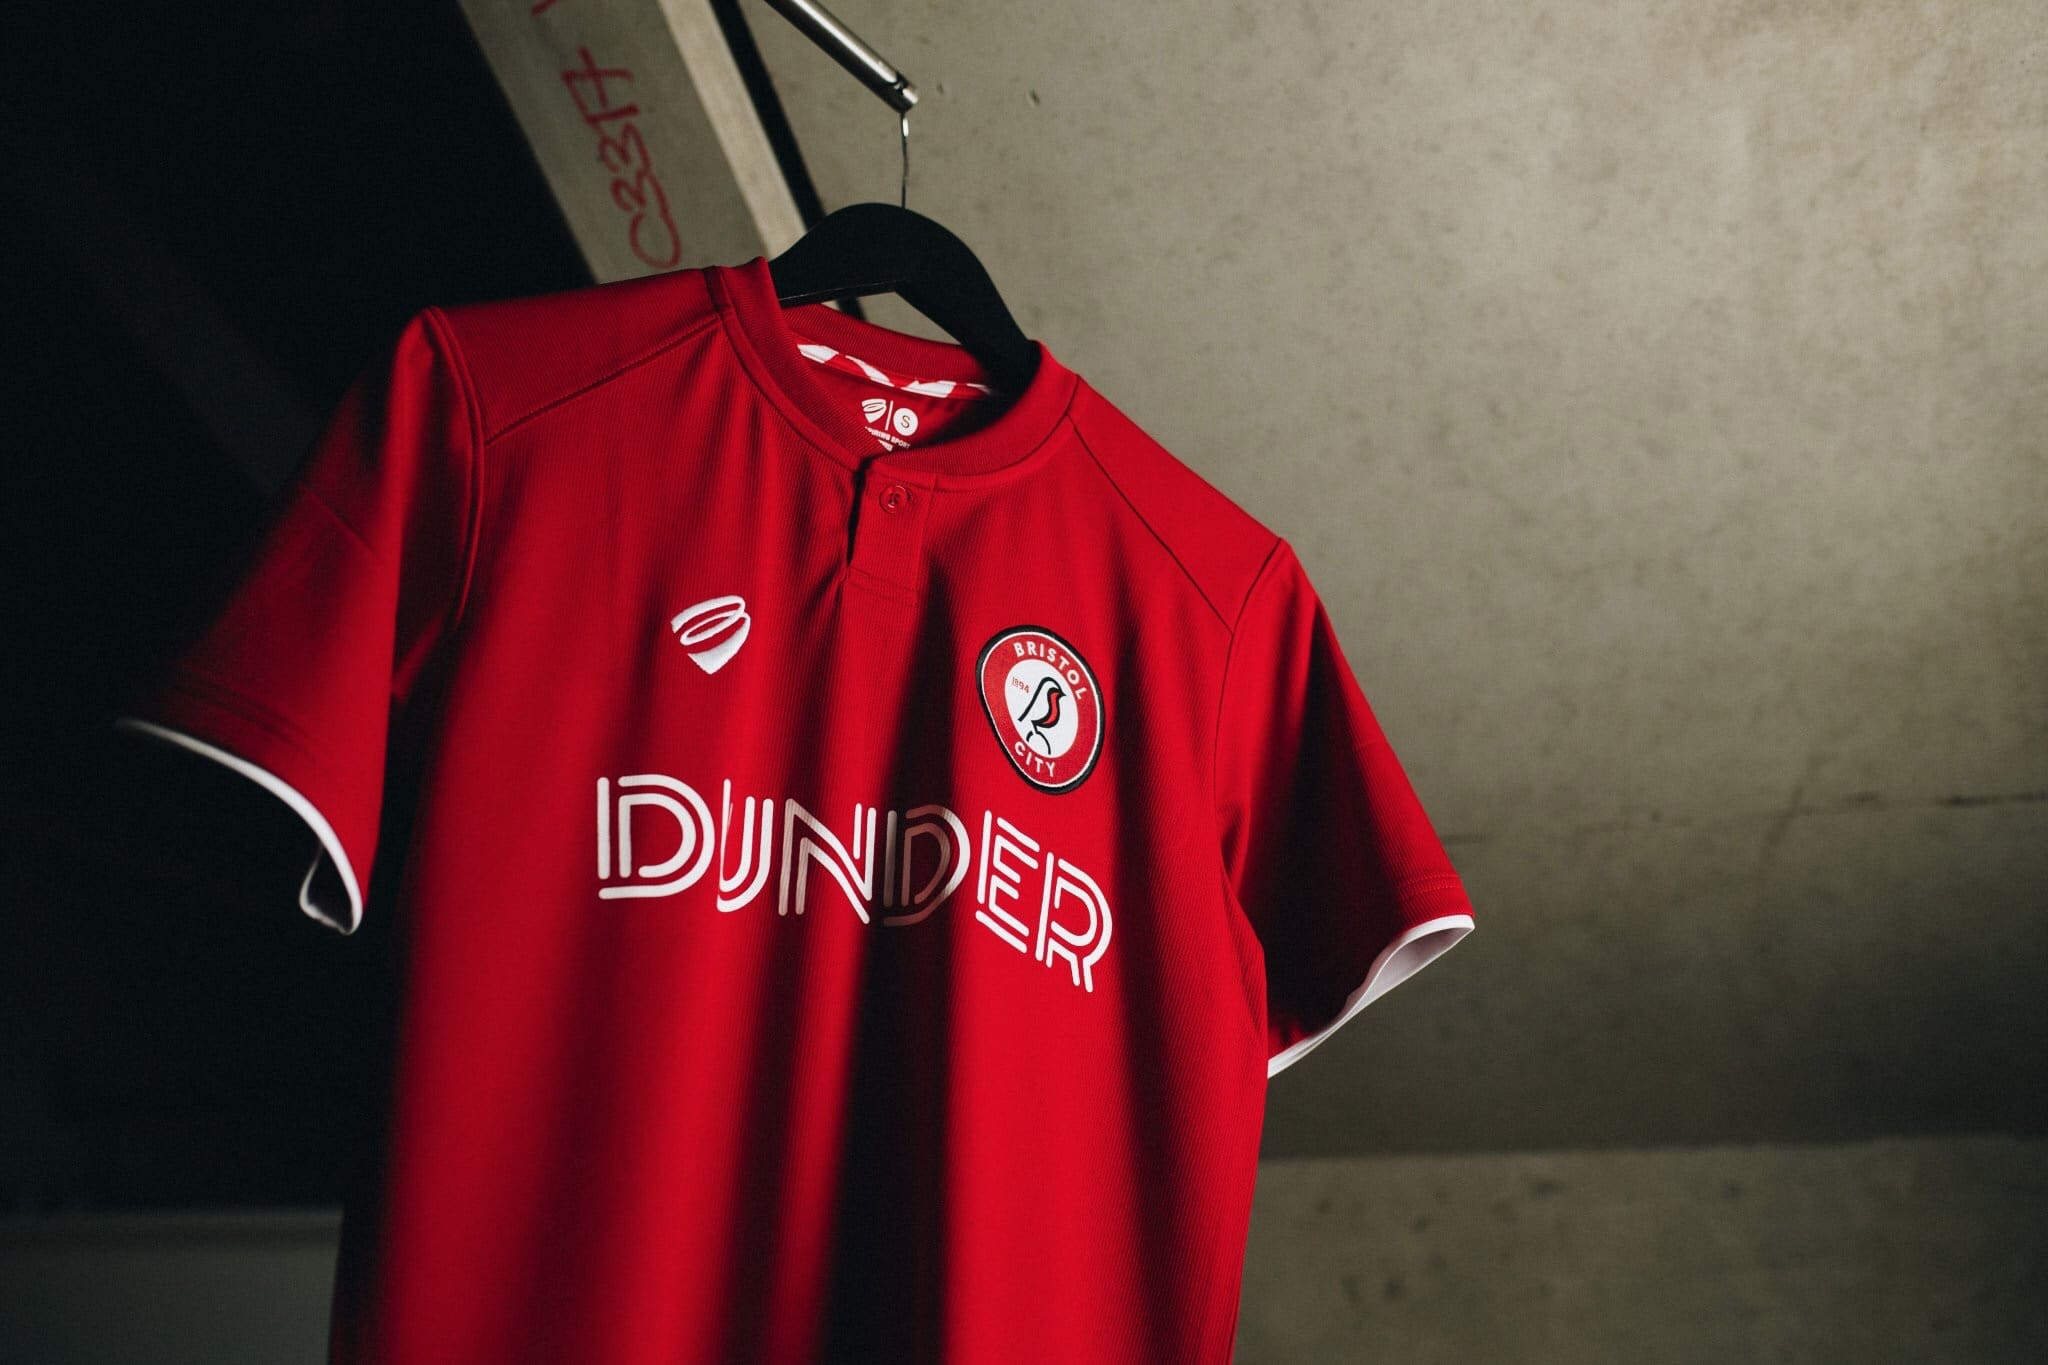 2efd03b2cde Bristol City 2019-20 Home Shirt Revealed | The Kitman